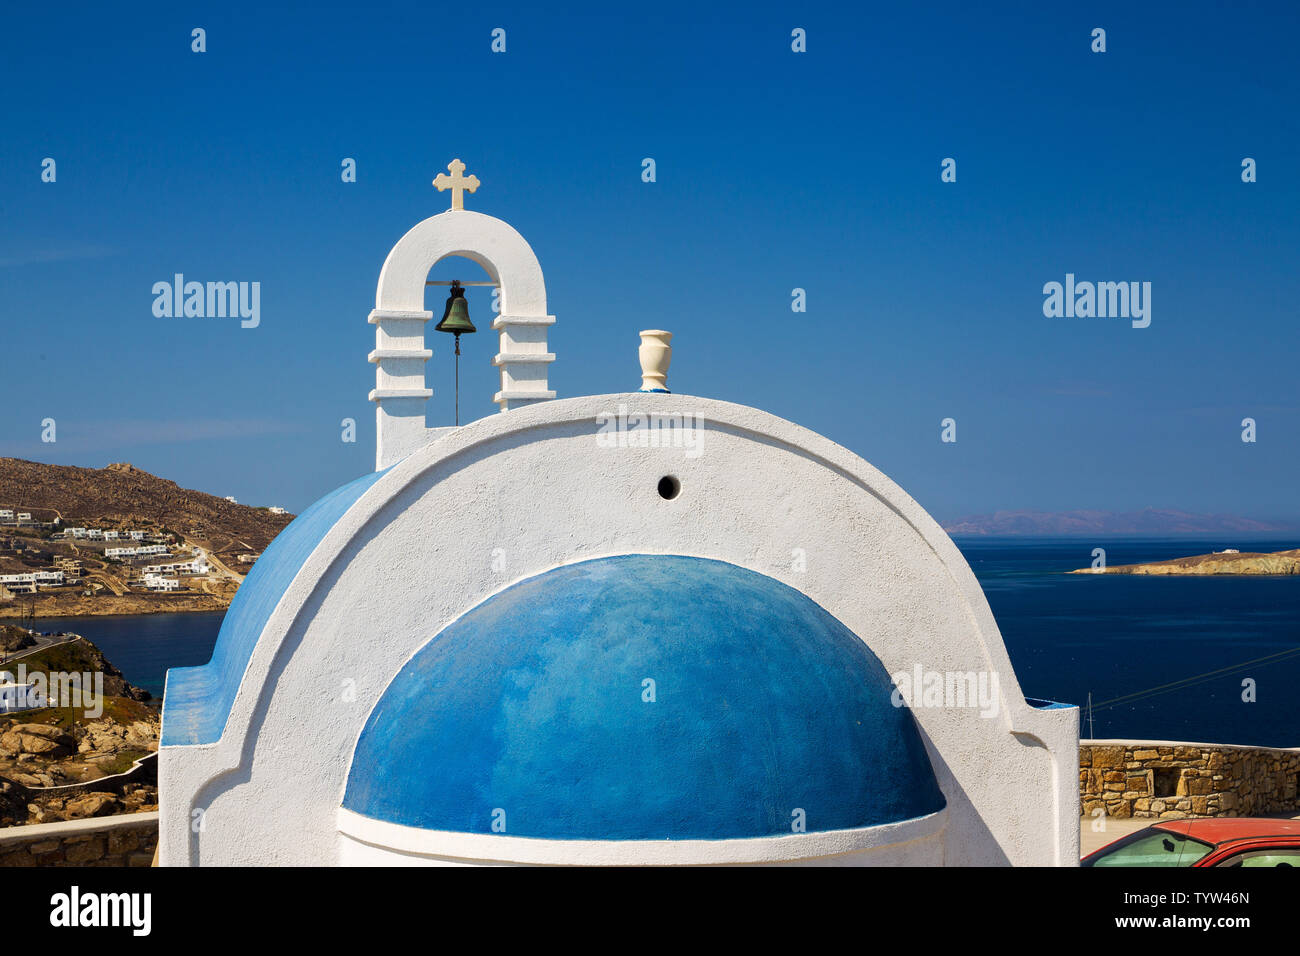 Famous White Churches And Buildings On Greek Islands Aegean